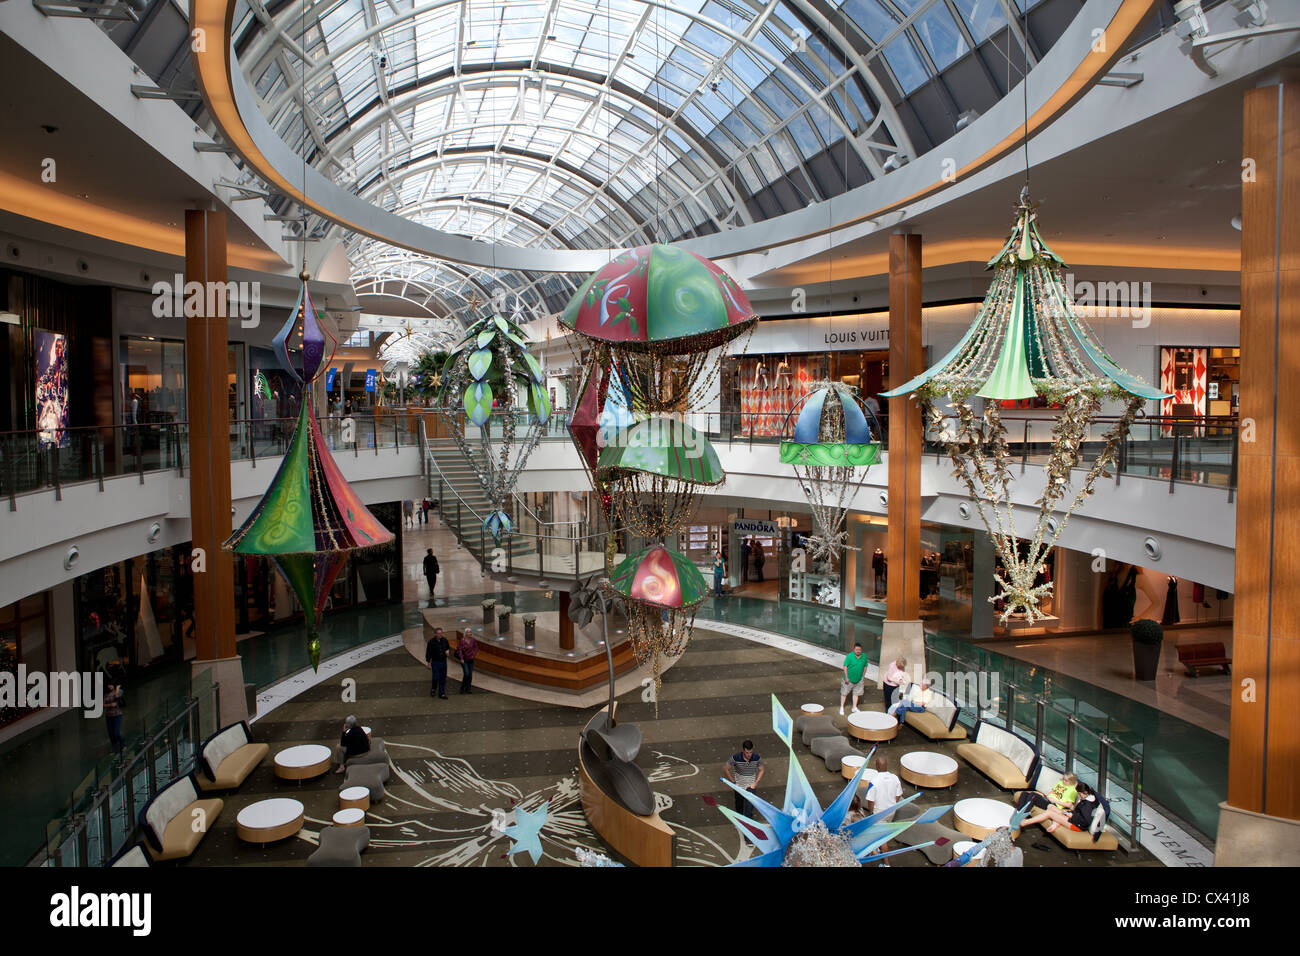 Best United States Shopping: See reviews and photos of shops, malls & outlets in United States on TripAdvisor.